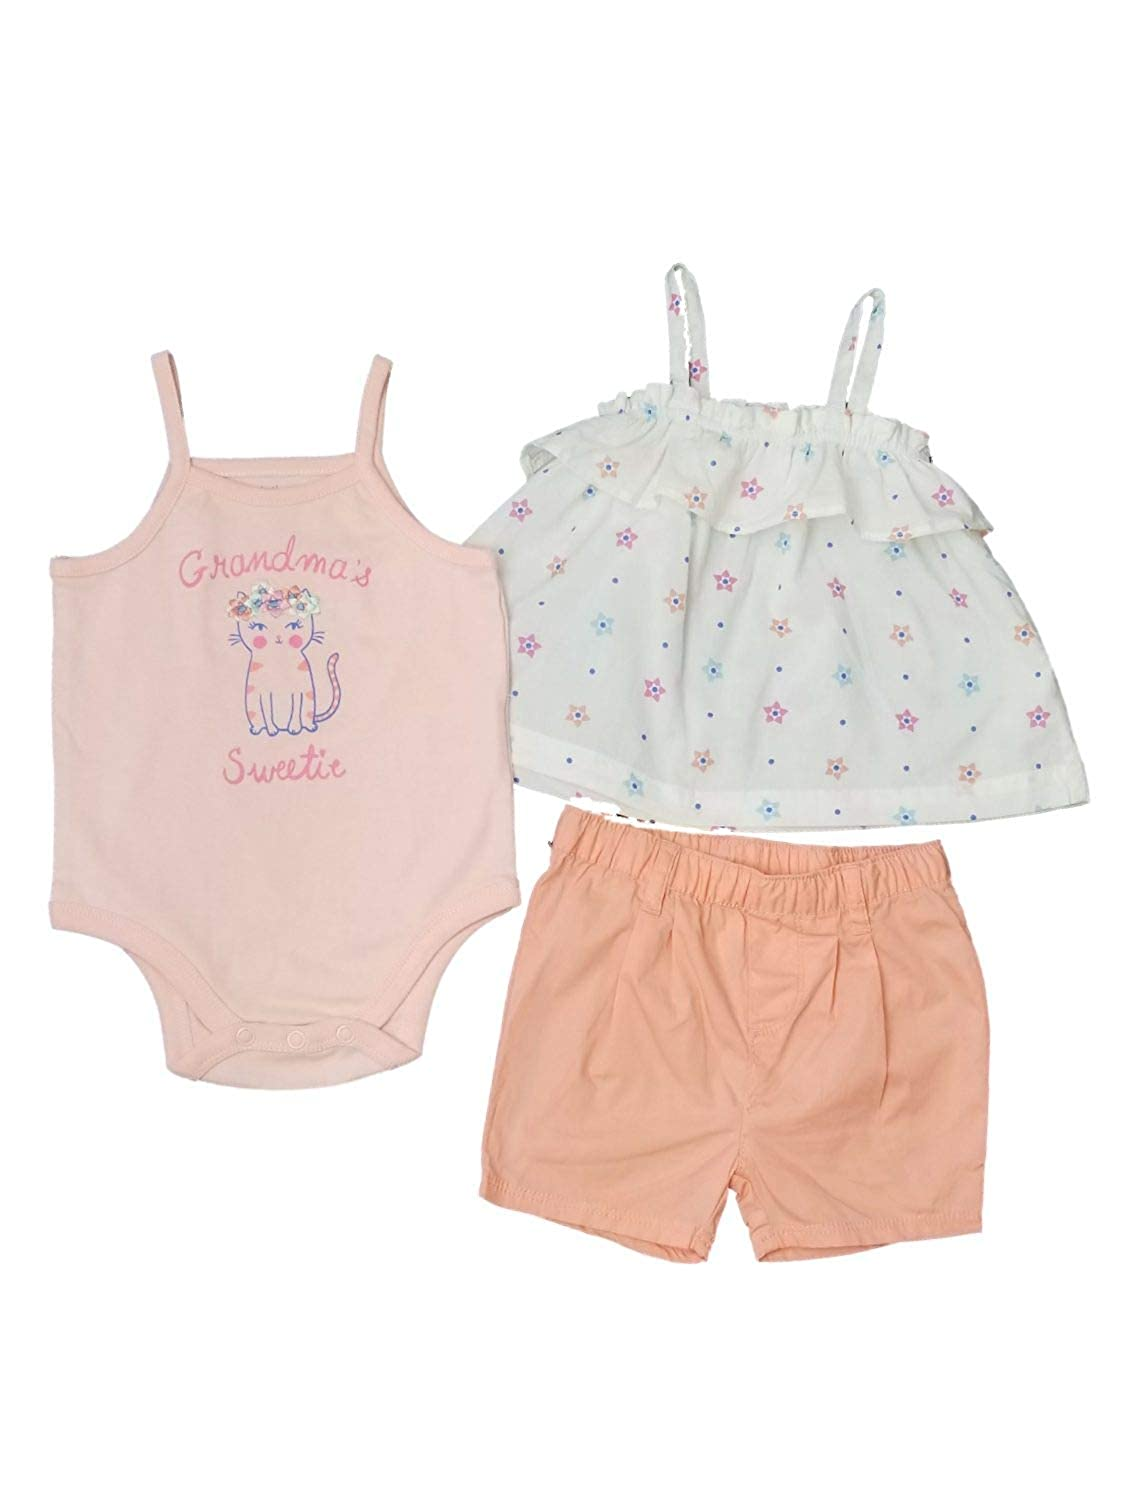 Little Wonders Infant Girls Baby Pink Peach Grandma Sweetie Top /& Matching Shorts Outfit